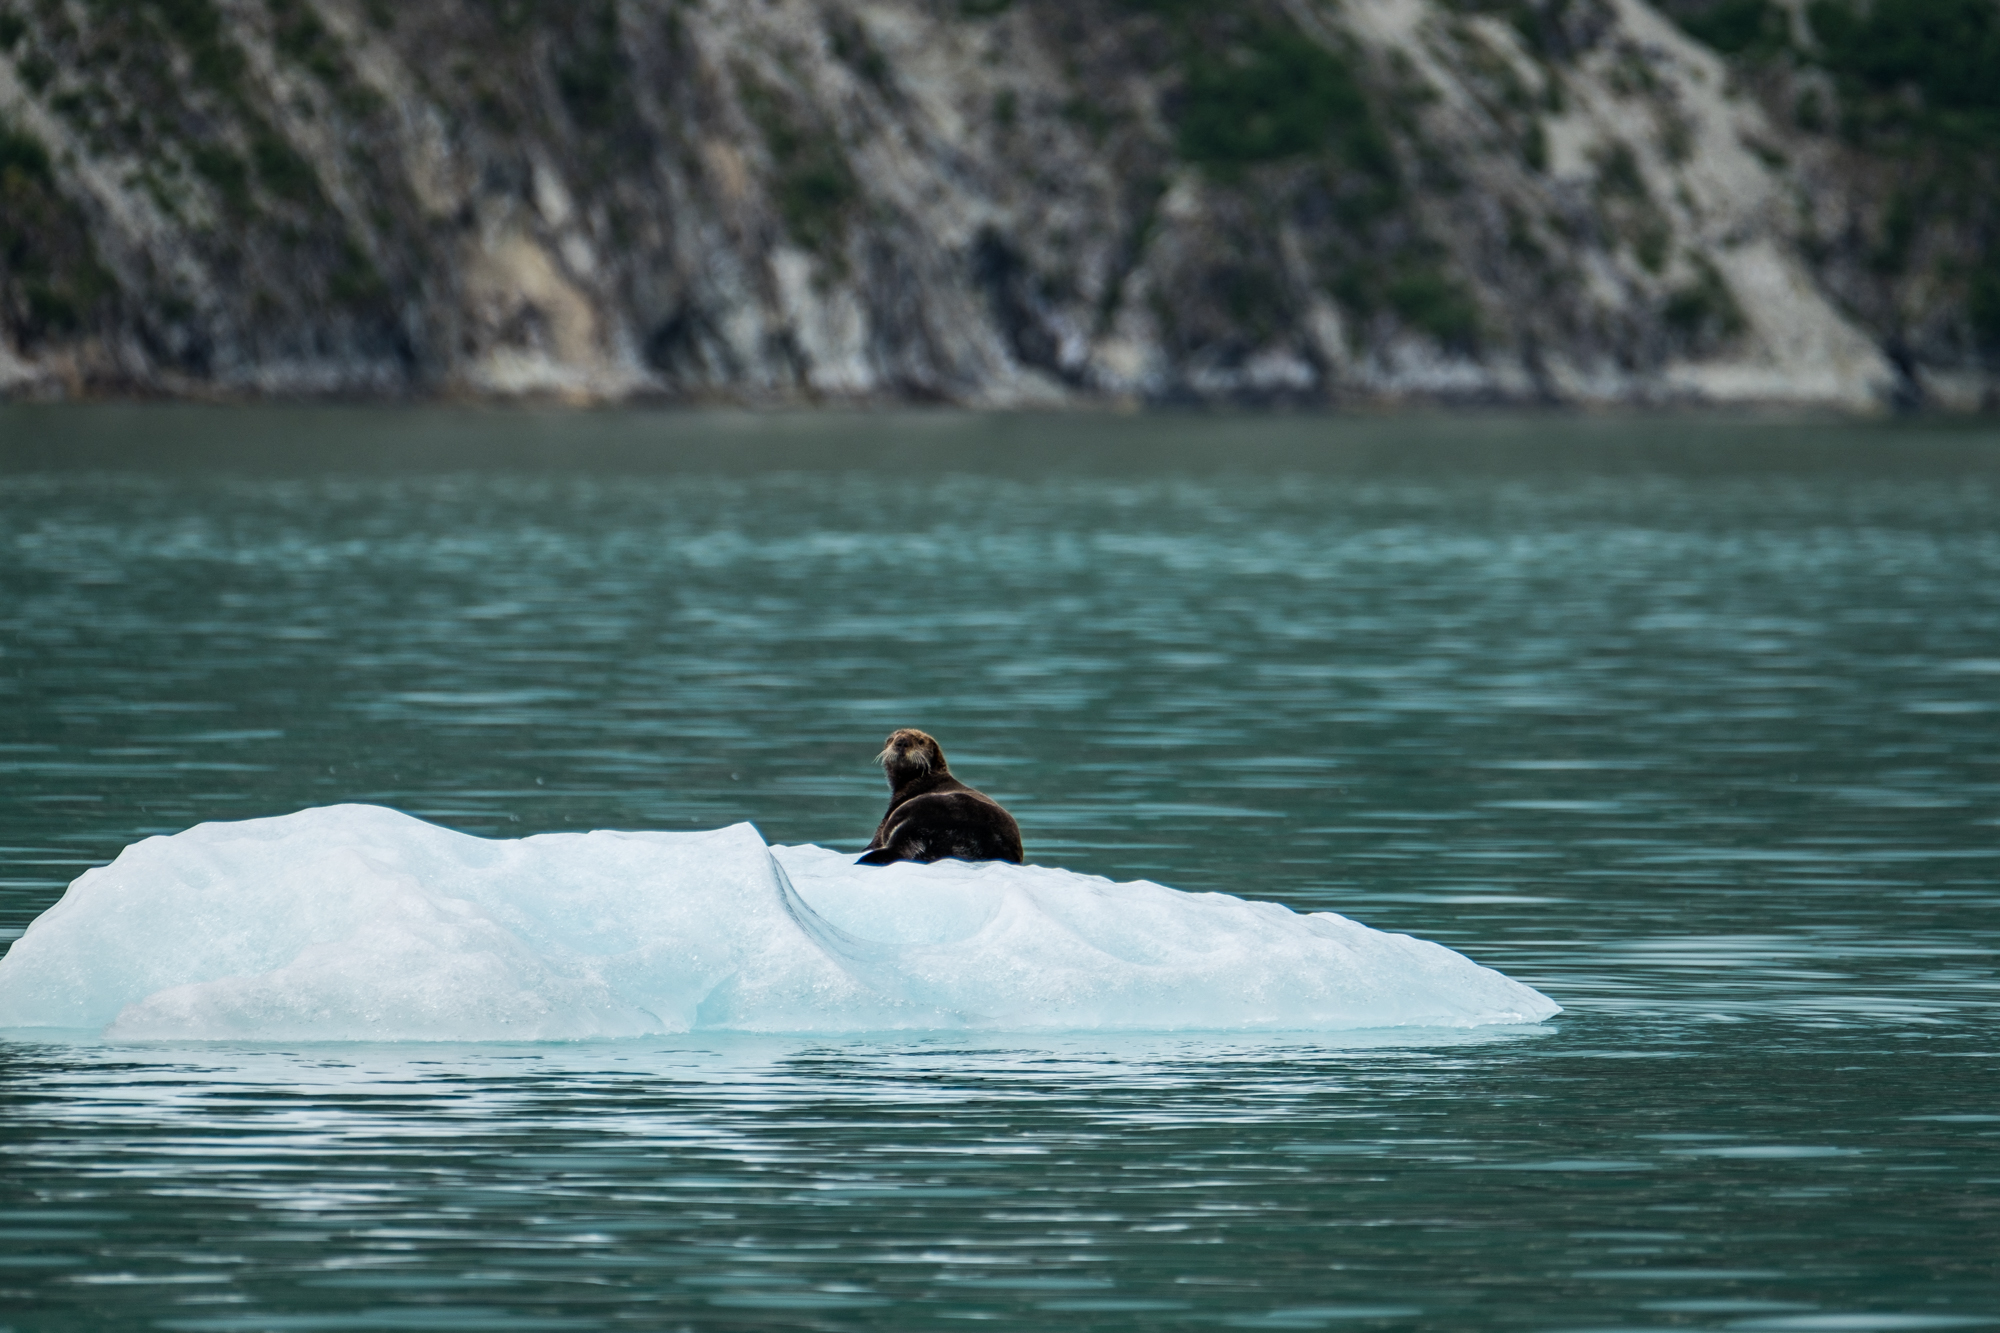 It is rare to see a sea otter on an iceberg.